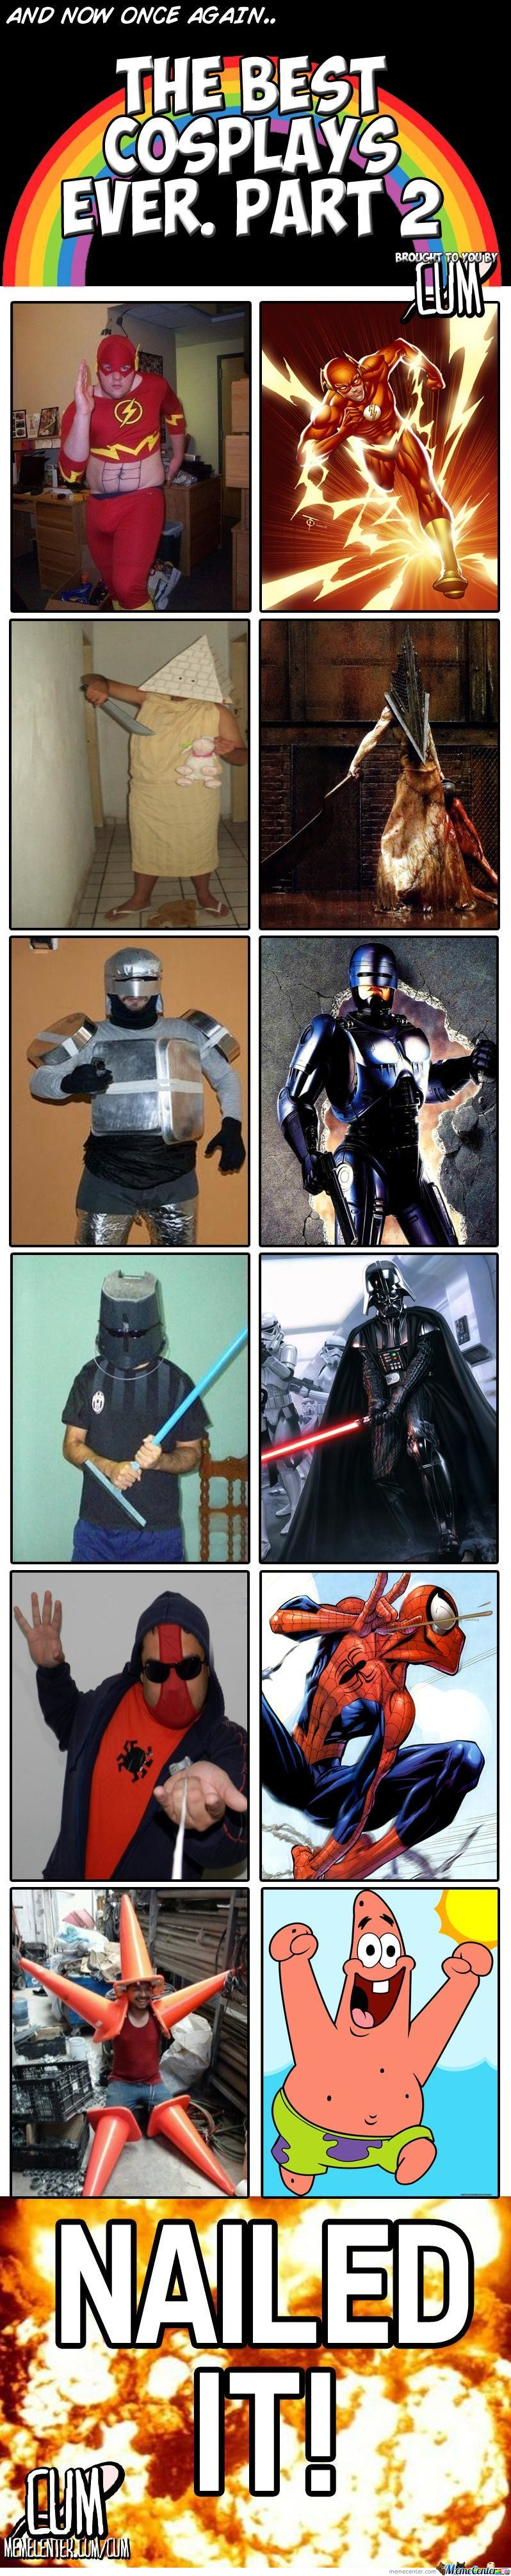 The Best Cosplays Ever Part 2